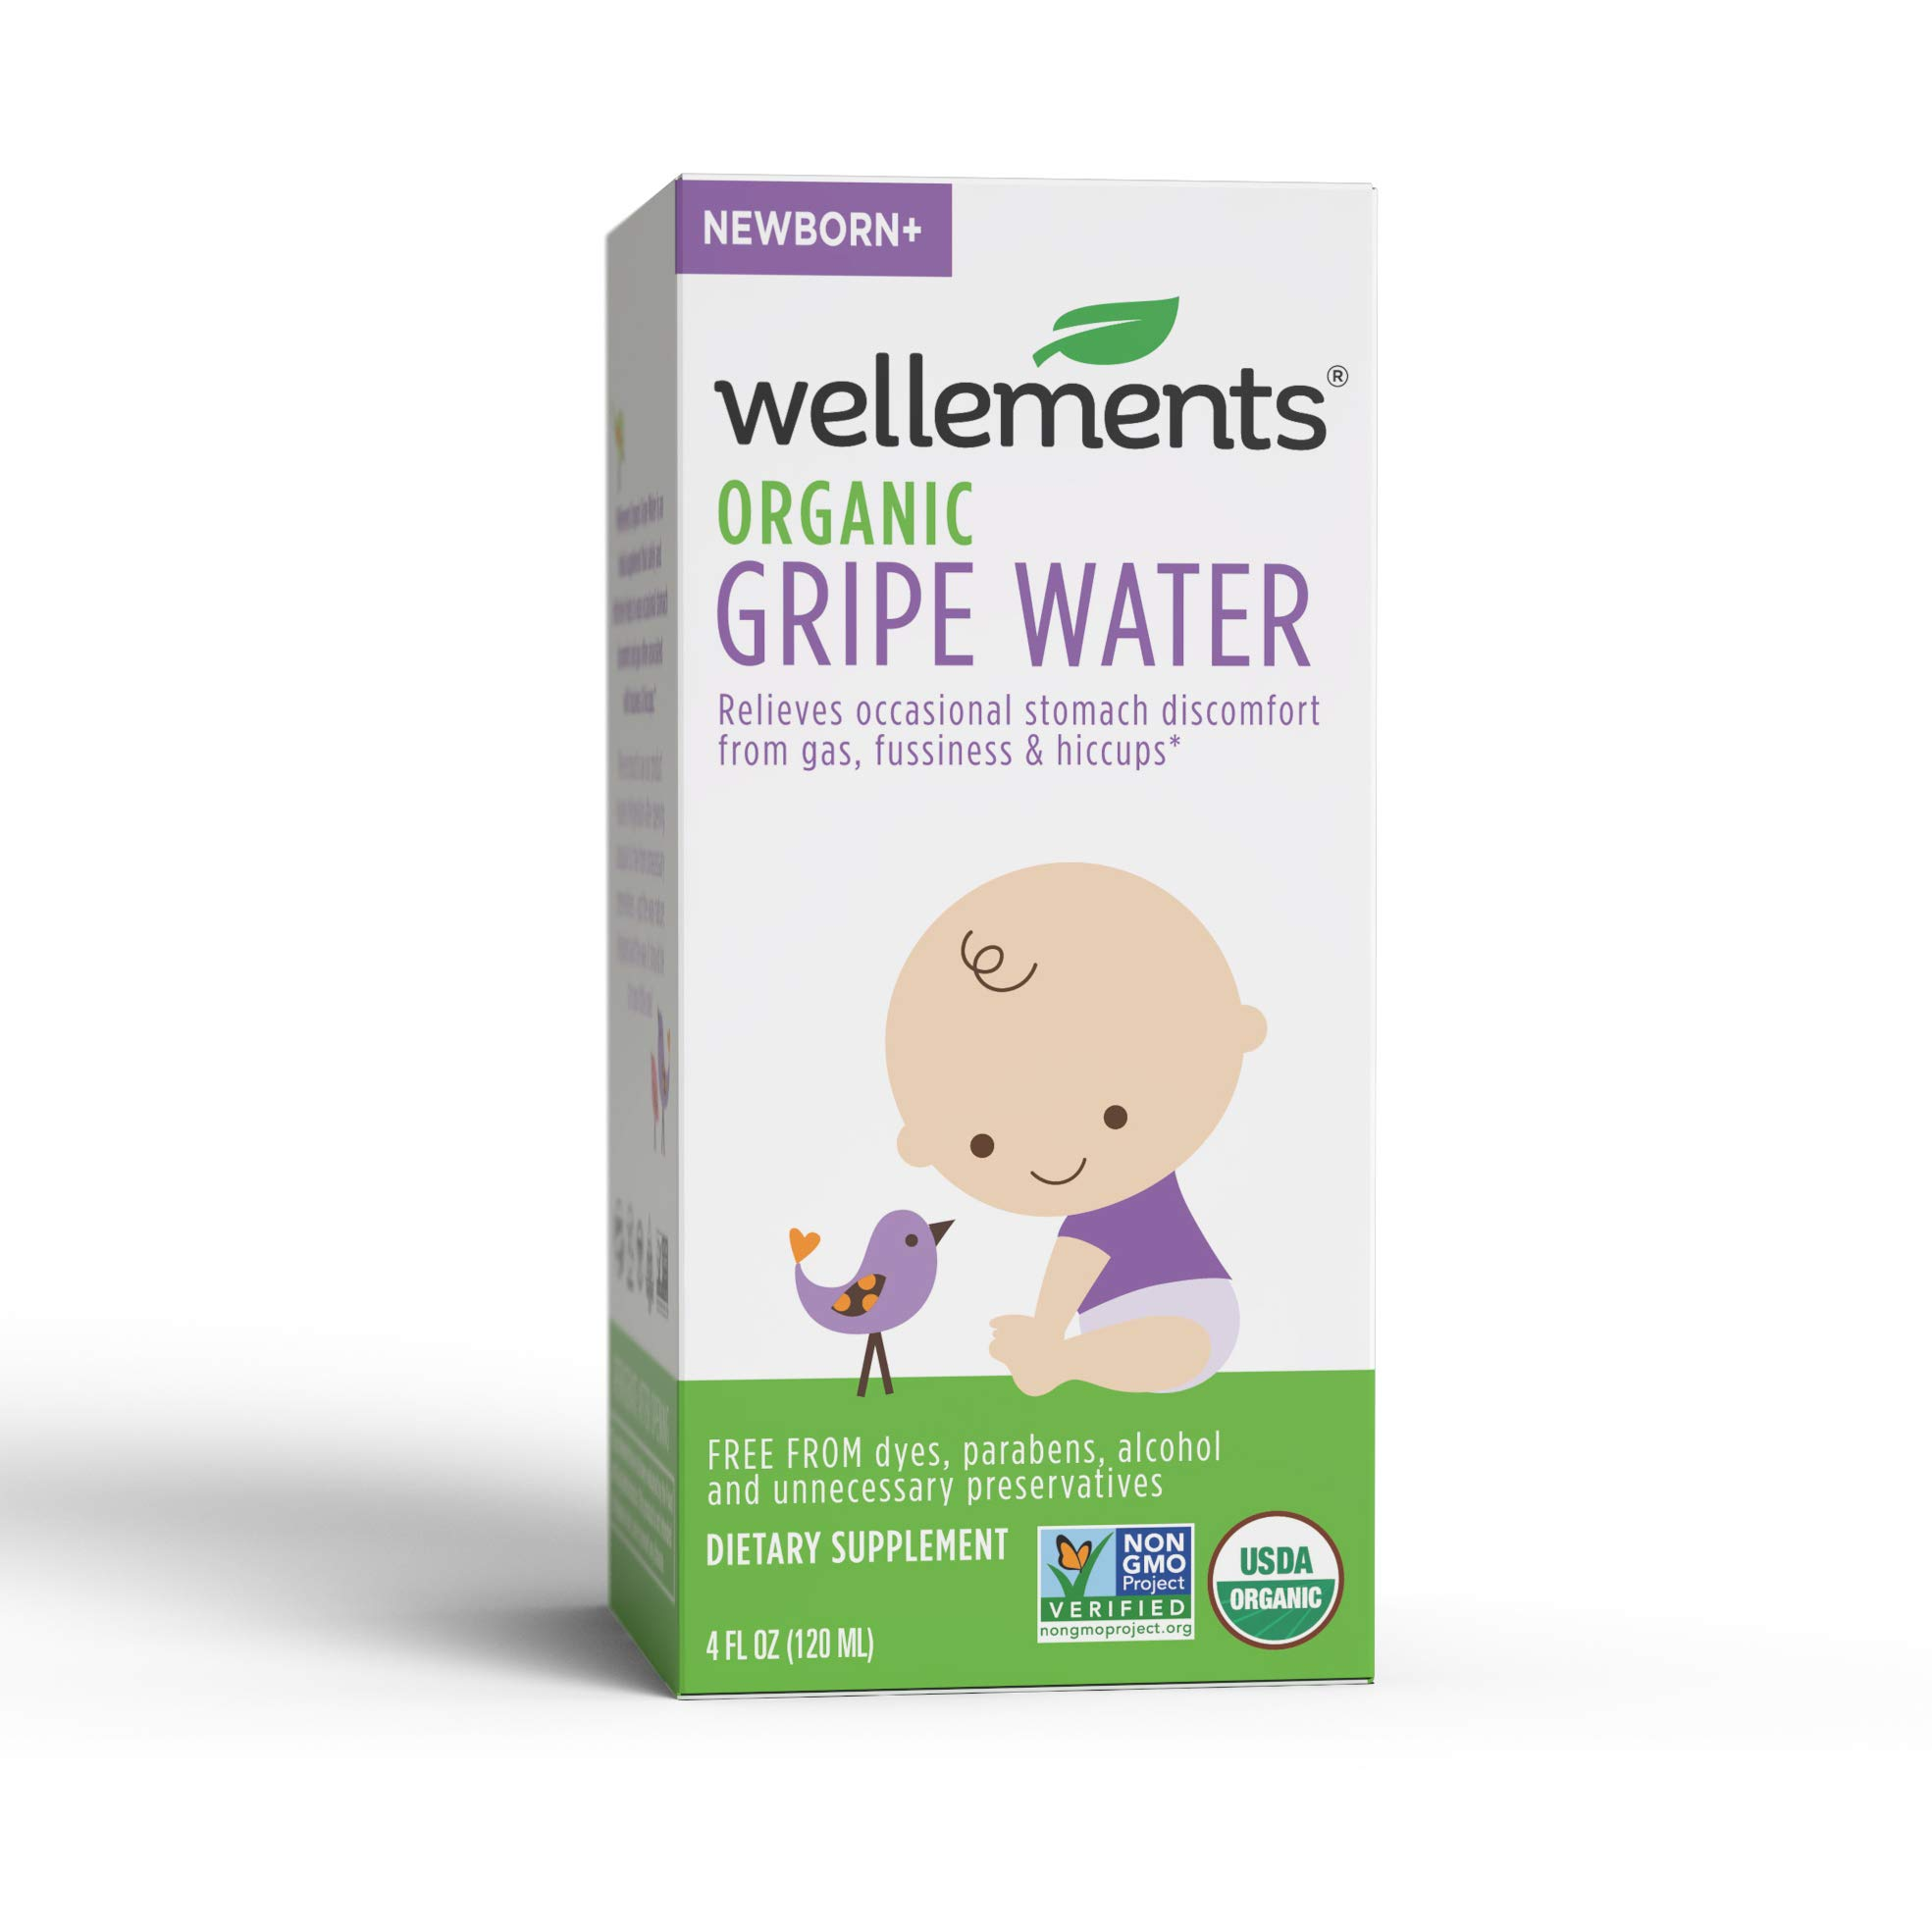 Wellements Organic Gripe Water, 4 Fl Oz, 2 Count, Eases Baby's Stomach Discomfort and Gas, Free From Dyes, Parabens…